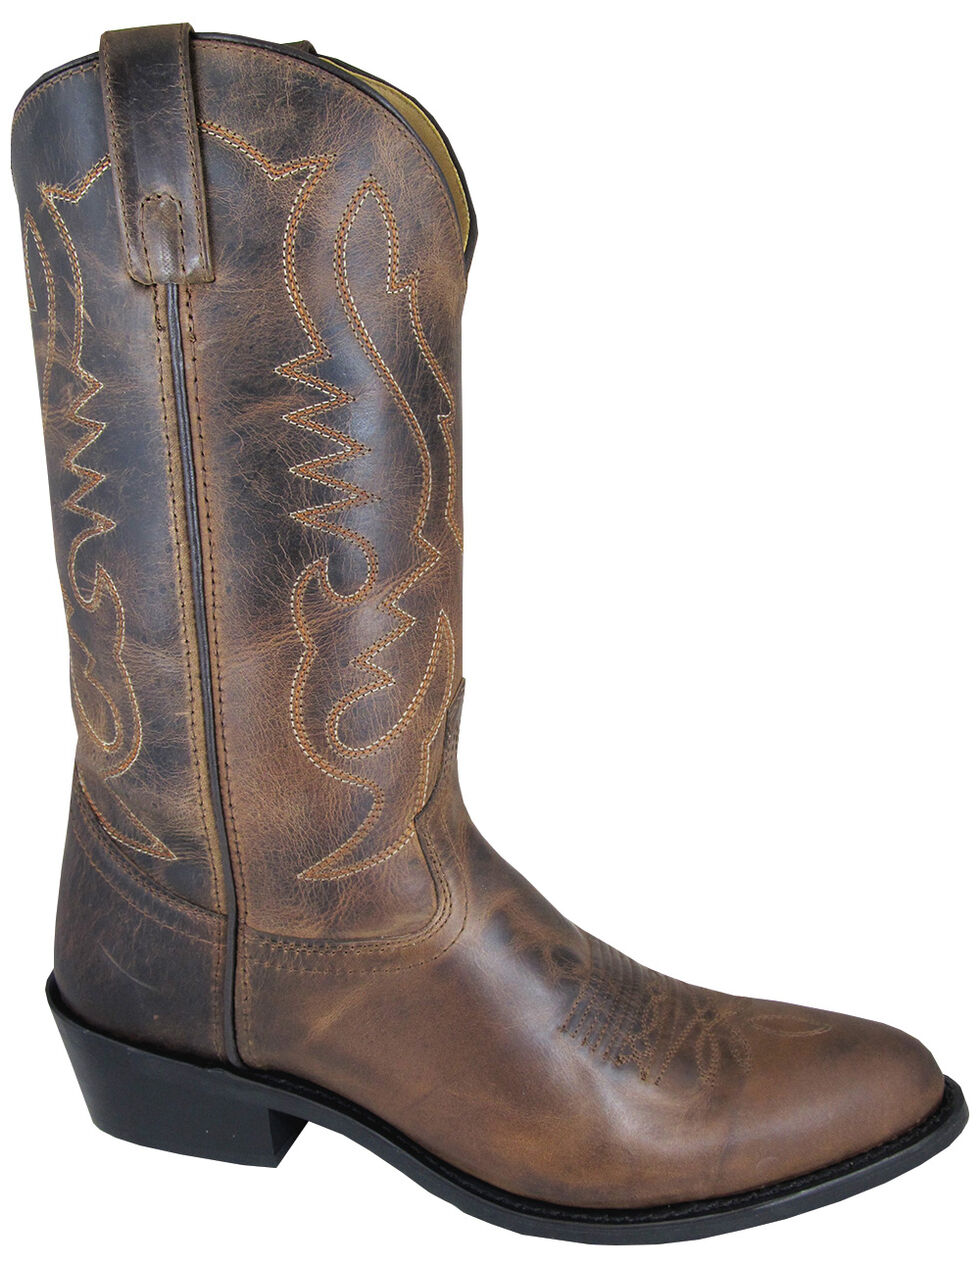 Smoky Mountain Men's Brown Denver Cowboy Boots - Round Toe, Brown, hi-res